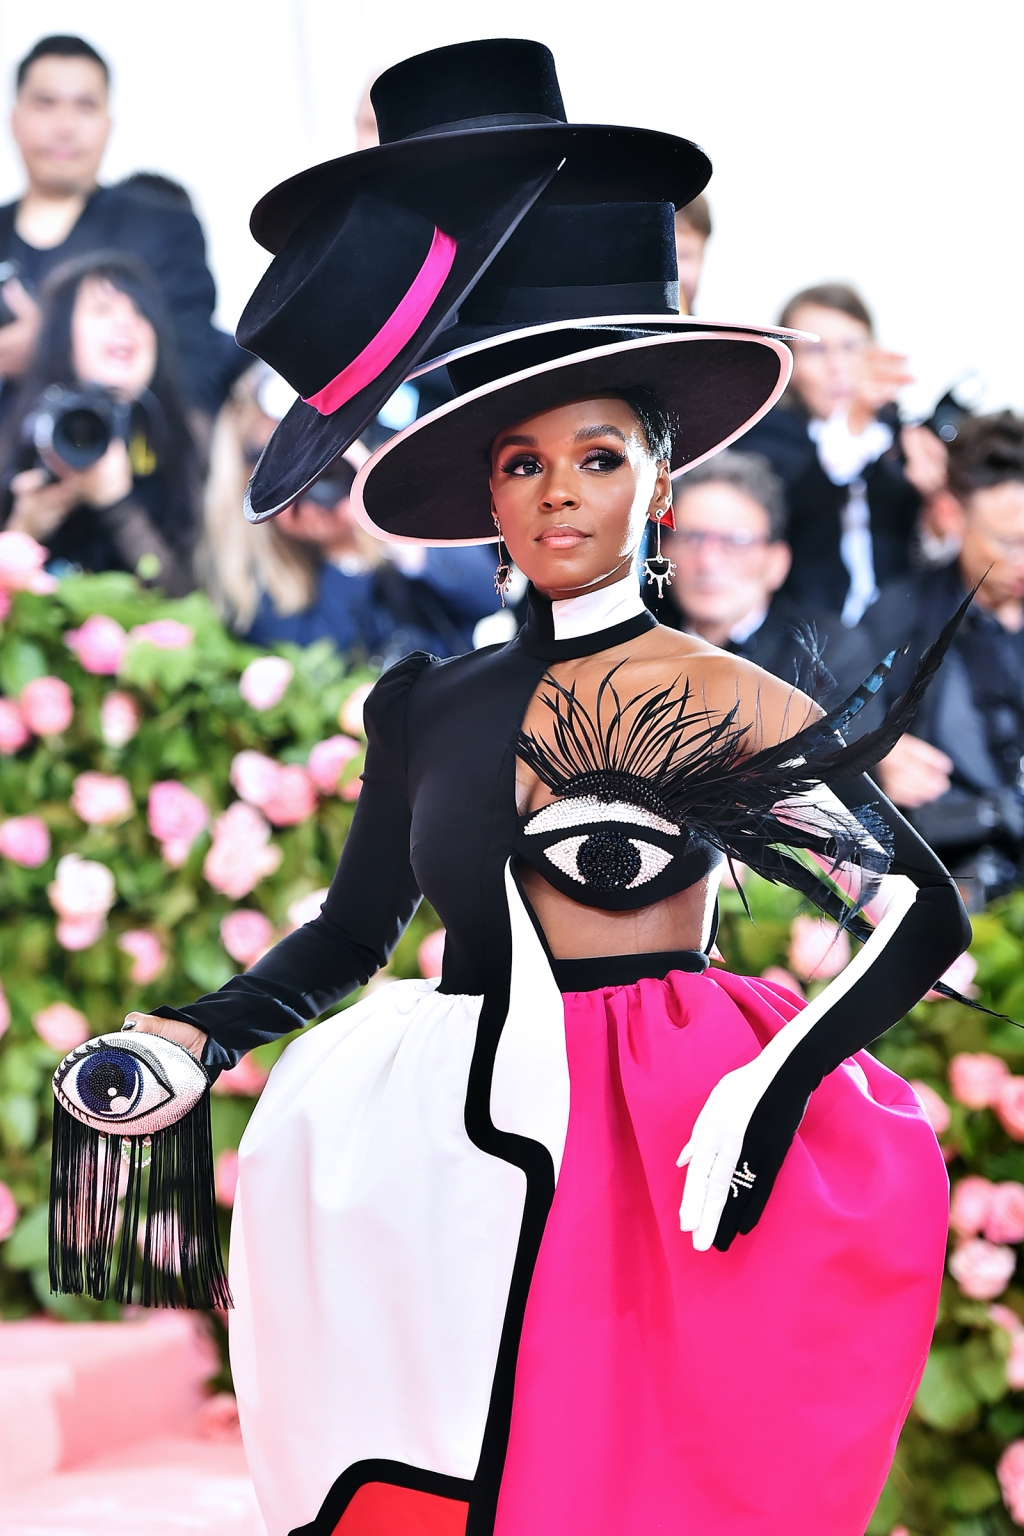 Janelle Monáe attends The 2019 Met Gala Celebrating Camp: Notes on Fashion at Metropolitan Museum of Art on May 06, 2019 in New York City.